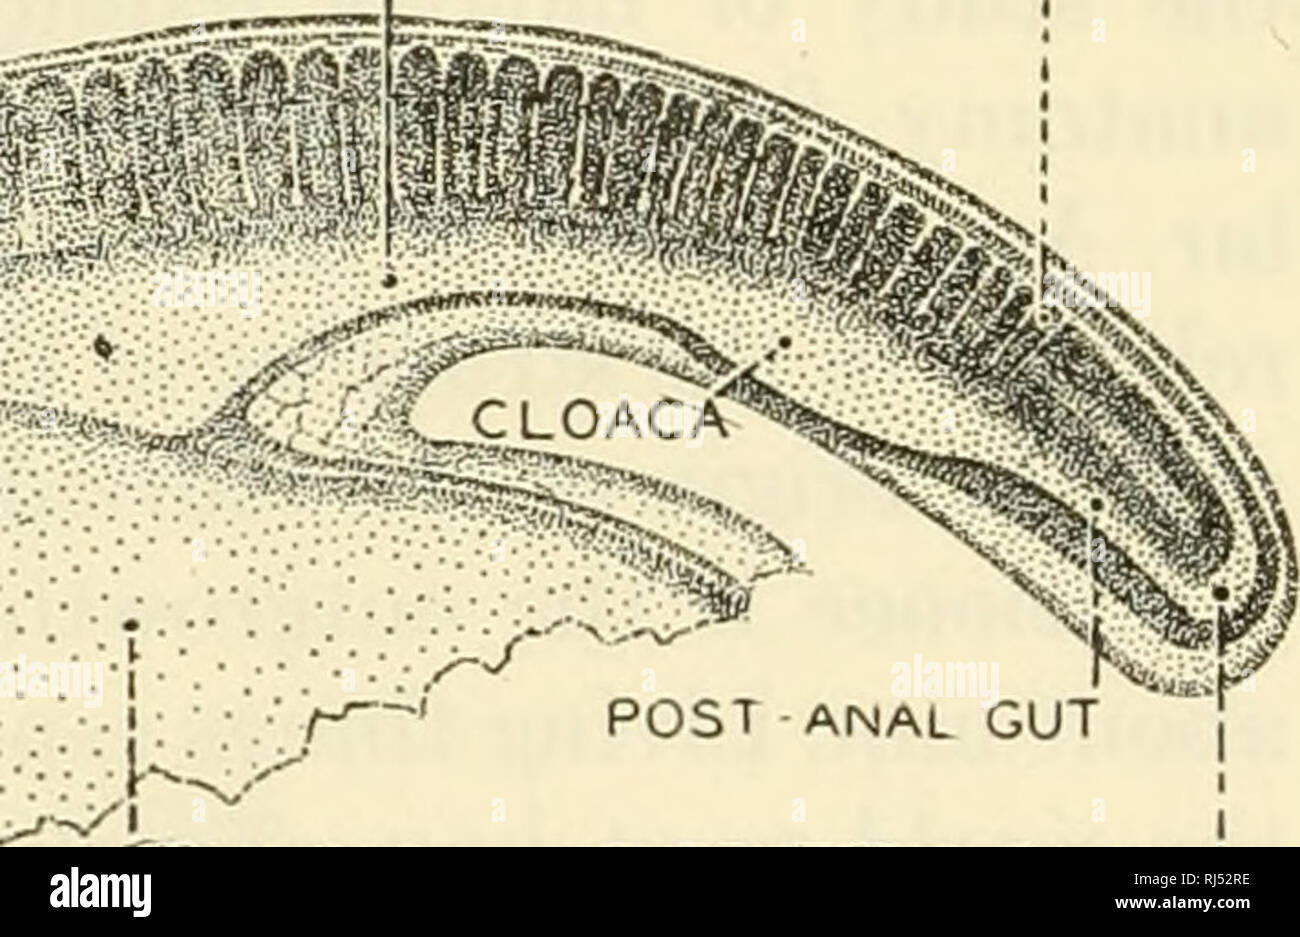 """. The chordates. Chordata. MIDGUT HINDGUJ SOMITE A ', SOMITE I HEART C<- PERICARDIAL CAVITY. NEURENTERIC CANAL' Fig. 5. A 7 mm. Squalus embryo viewed as a cleared specimen from the left side. The yolk-sac has been mostly removed. Two gill-chambers are open. Develop- ing cranial nerves are indicated by Roman numerals. (Courtesy, Neal and Rand: """"Chordate Anatomy,"""" Philadelphia, The Blakiston Company.) theories which have exerted powerful influence on human thought have been derived largely from the relative fullness of our knowledge of the vertebrates. Facts of vertebrate comparativ - Stock Image"""